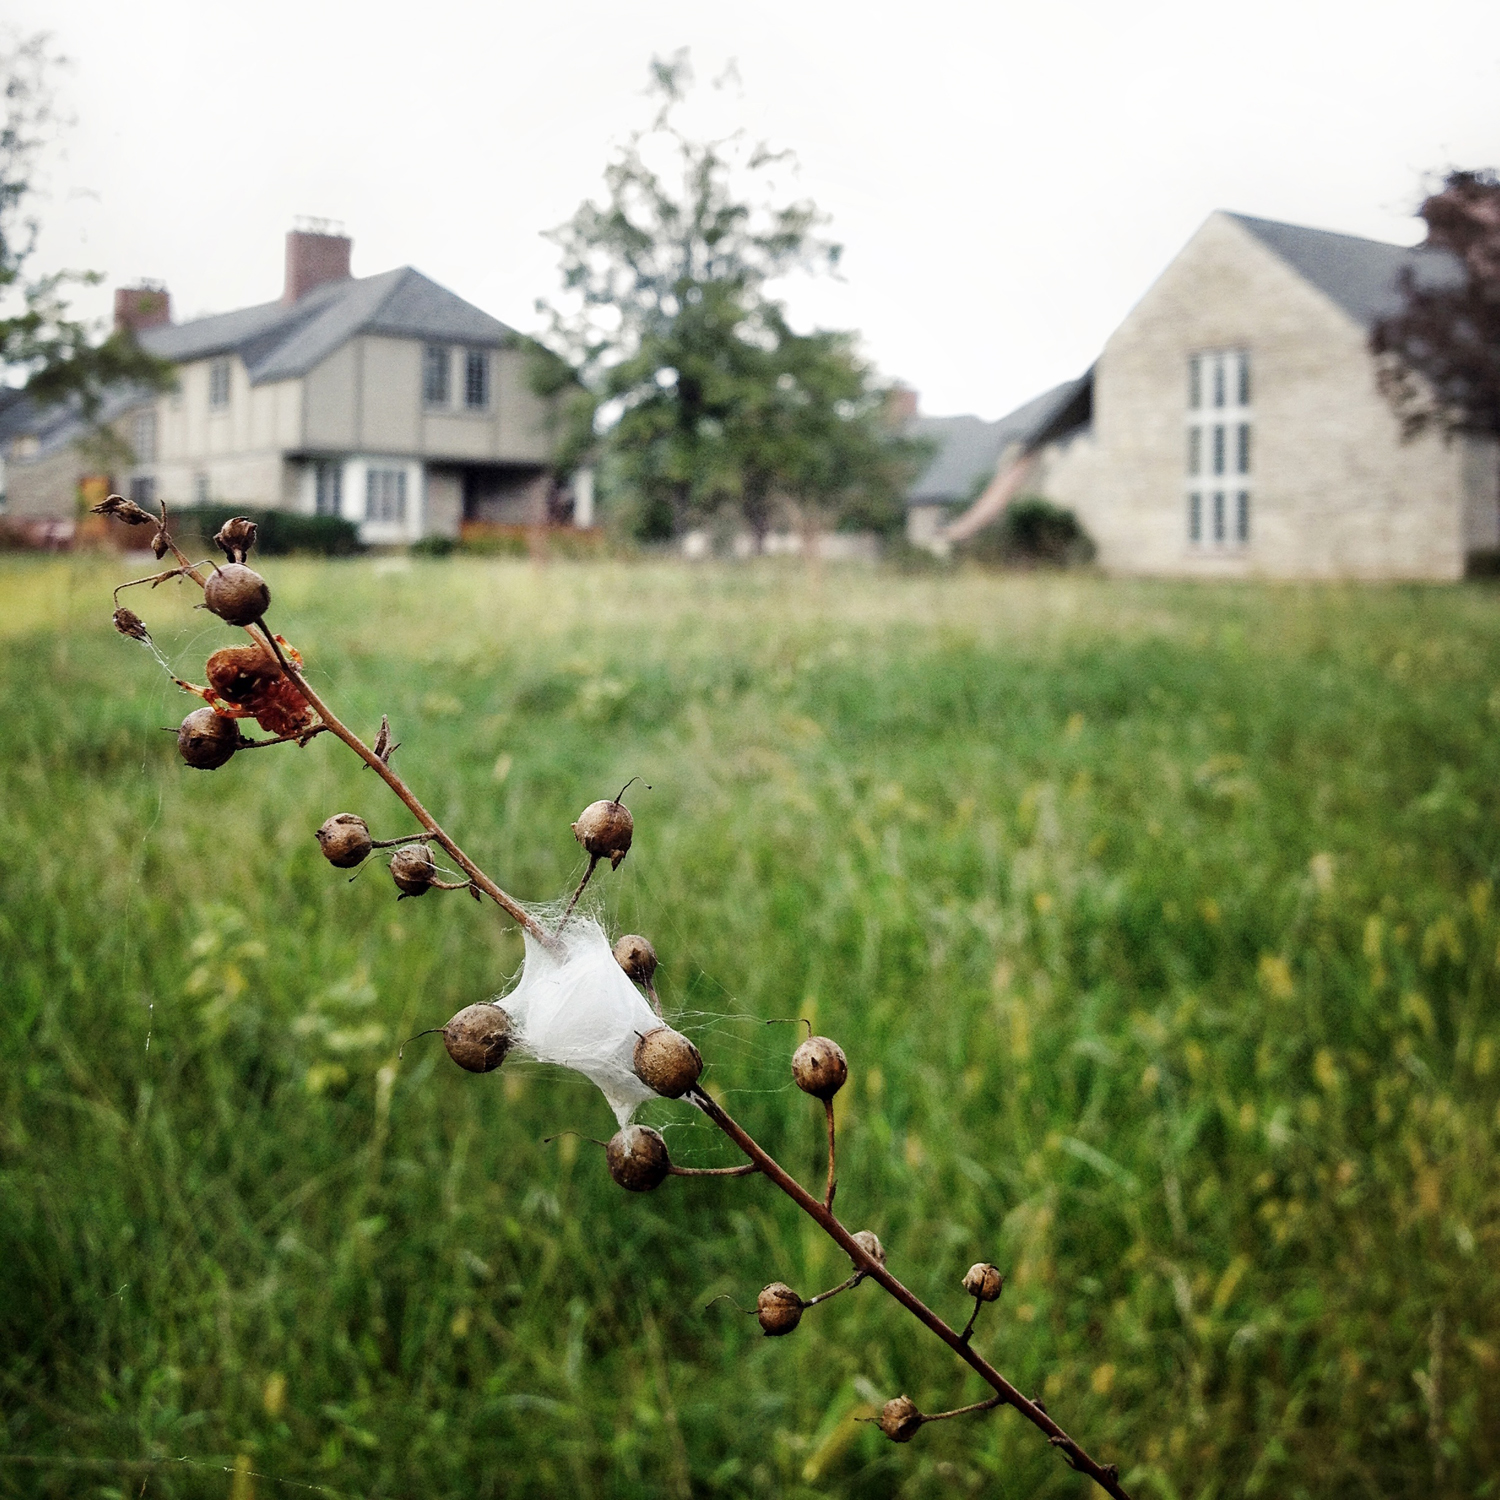 spillman farmer architects_bryn athyn college_cottages_5561 square_1500.jpg